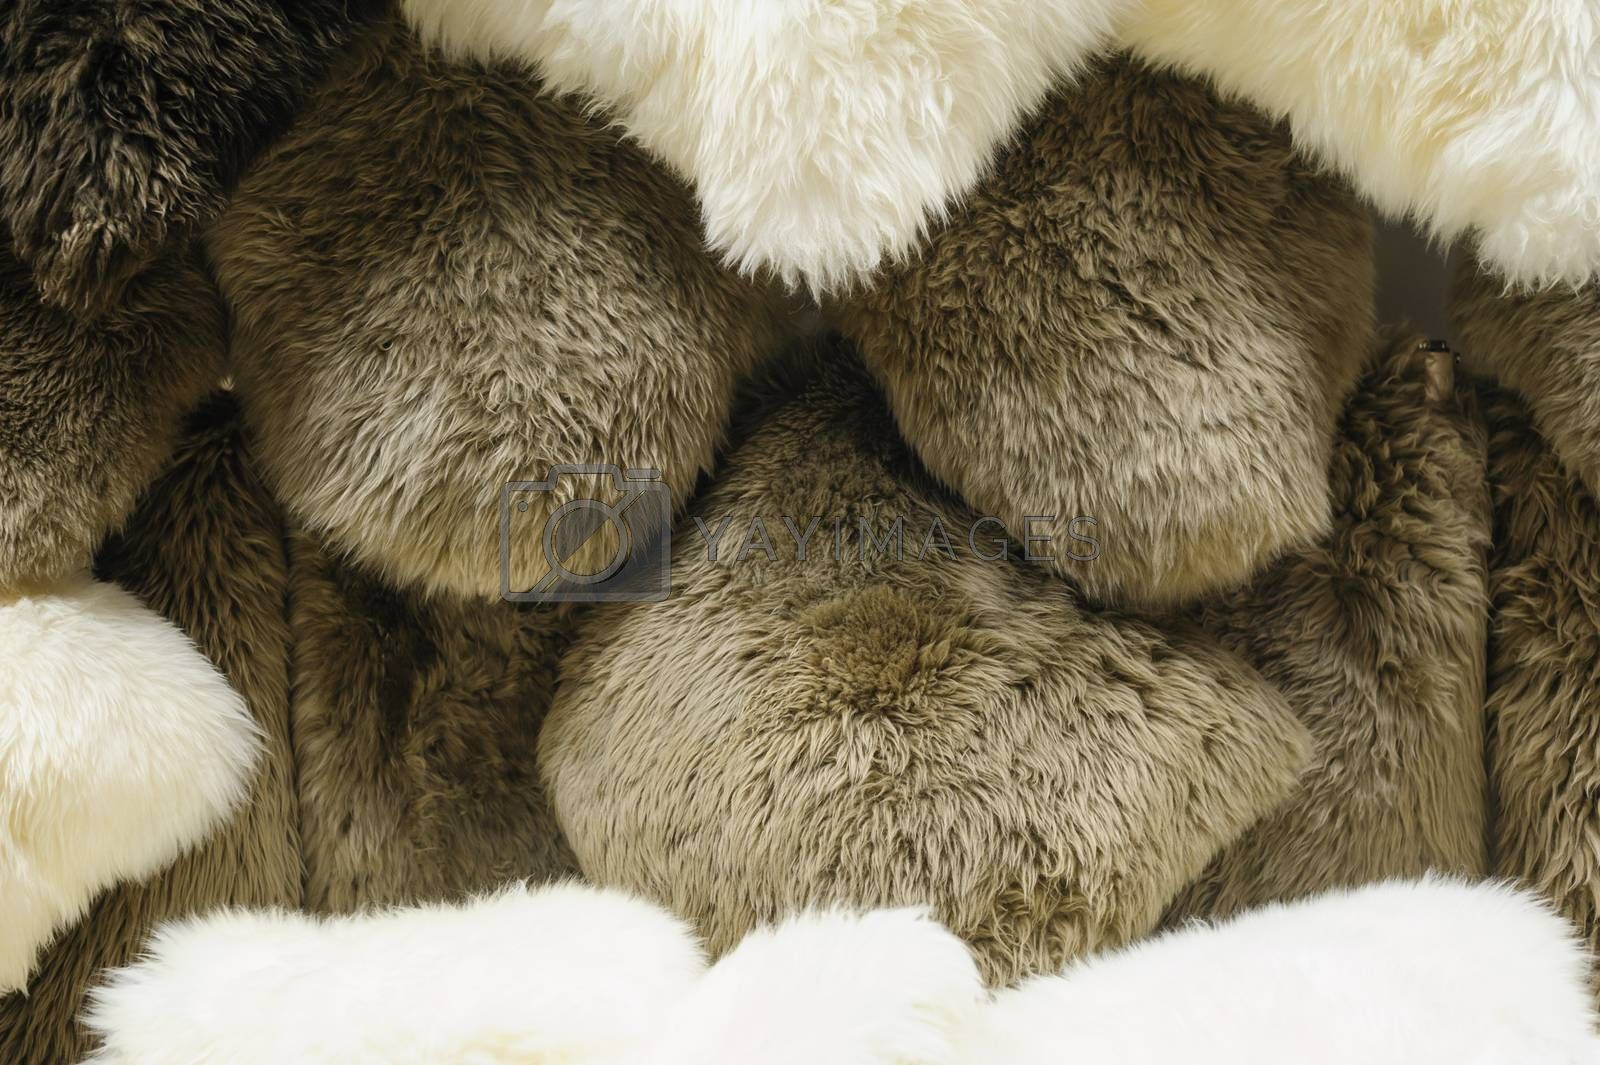 texture of white and grey fur animals and place for text